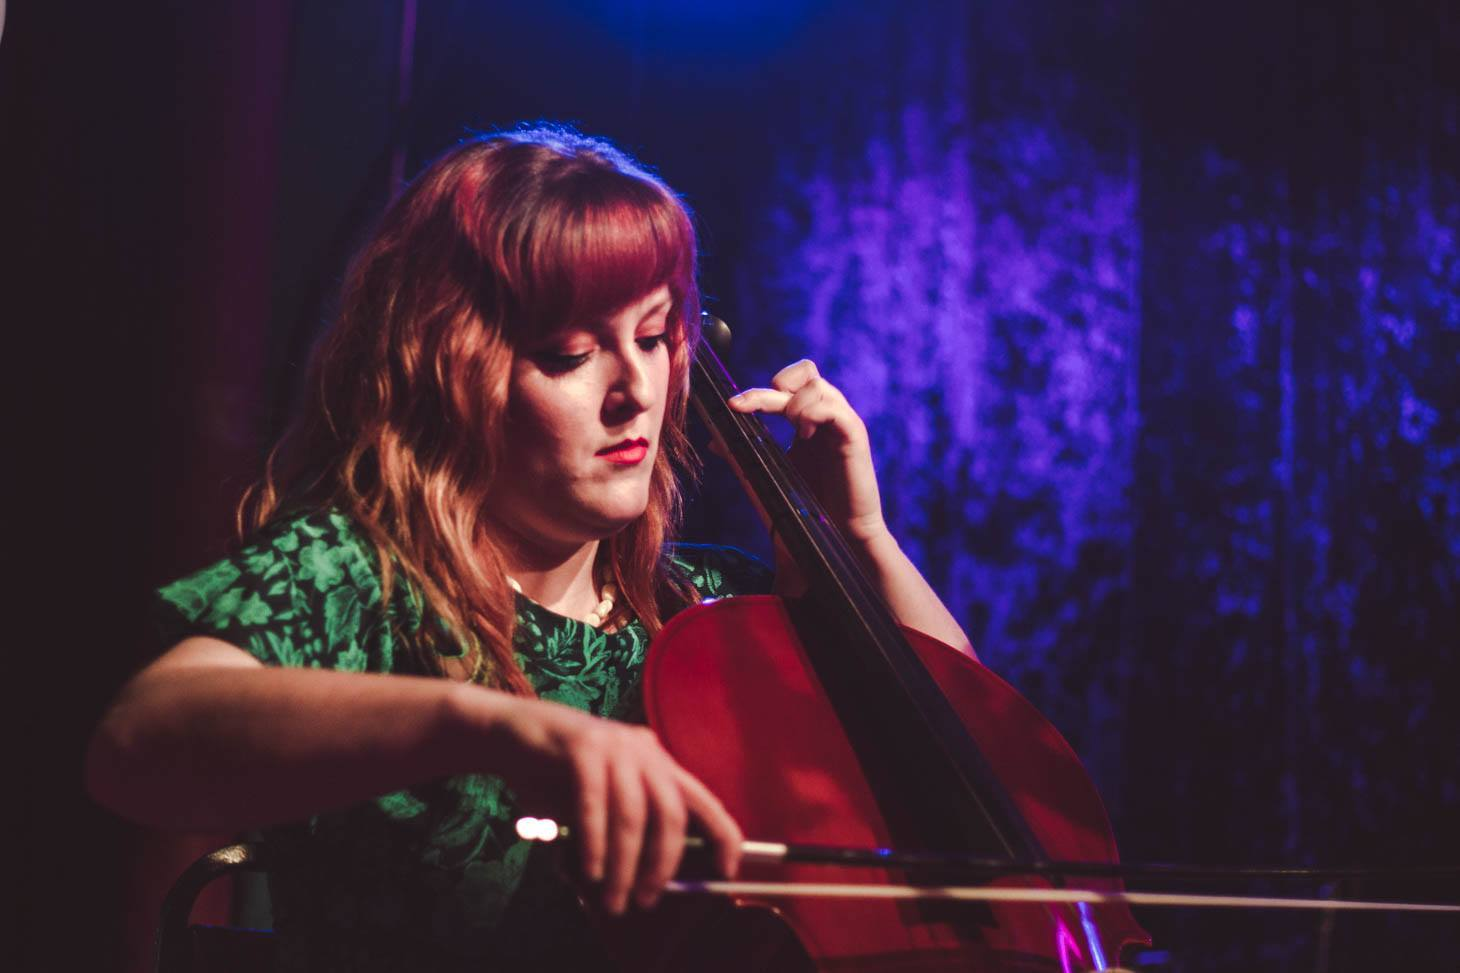 Bess Whitby  {she/her/hers}  music, poetry, performance art   Bess is a writer, cellist, and long-time Spiderwebber living in Denton. She holds an MA in creative writing from the University of North Texas and currently works as the marketing manager for UNT Press. Bess has helped organize Spiderweb shows for almost five years. Her work has appeared in dozens of the Salon's zines.   Instagram  |  Twitter  |  Facebook